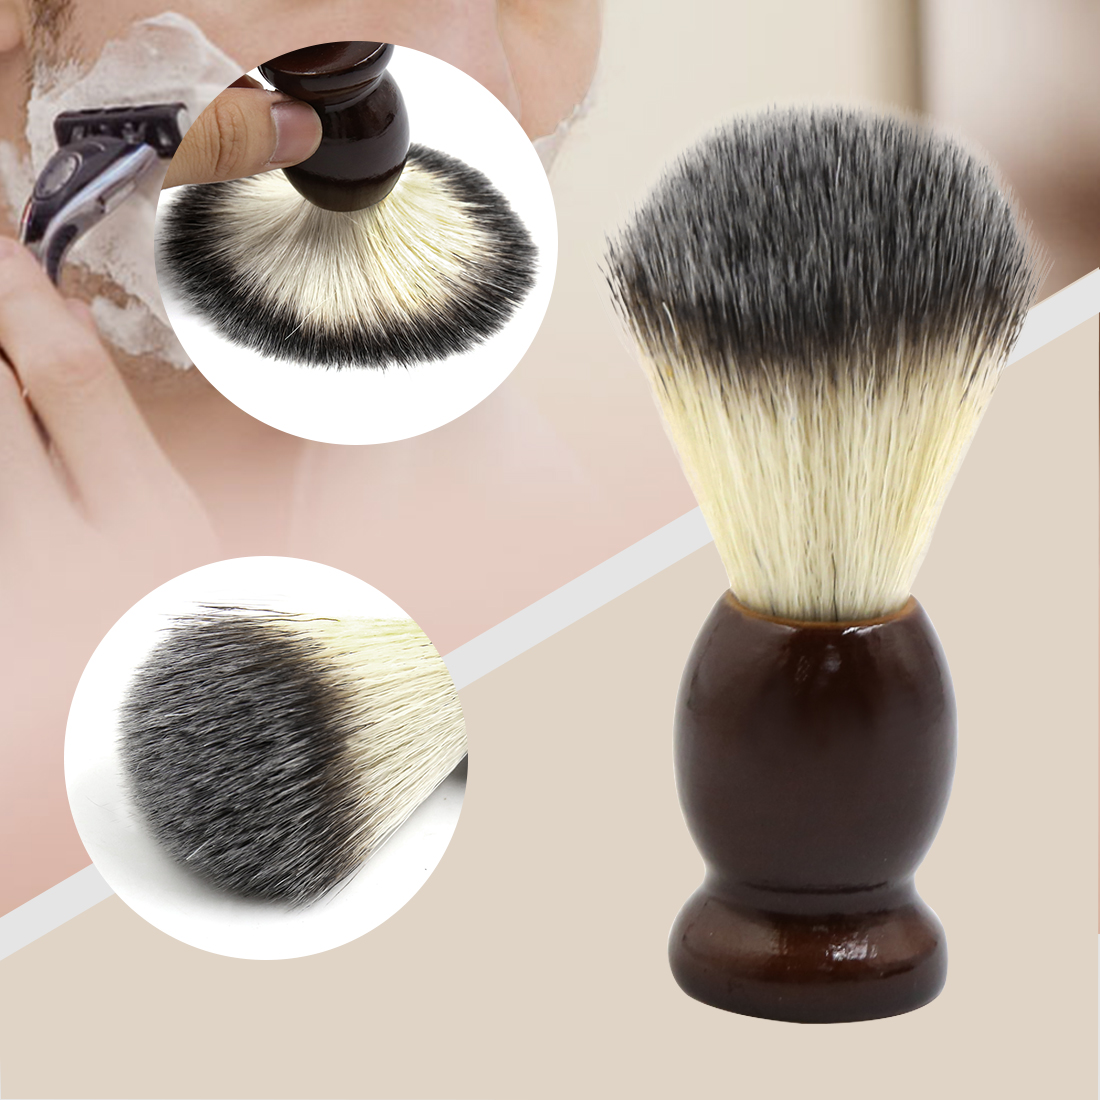 Brown Wooden Handle Soft Nylon Hair Wet Shaving Brush for Men